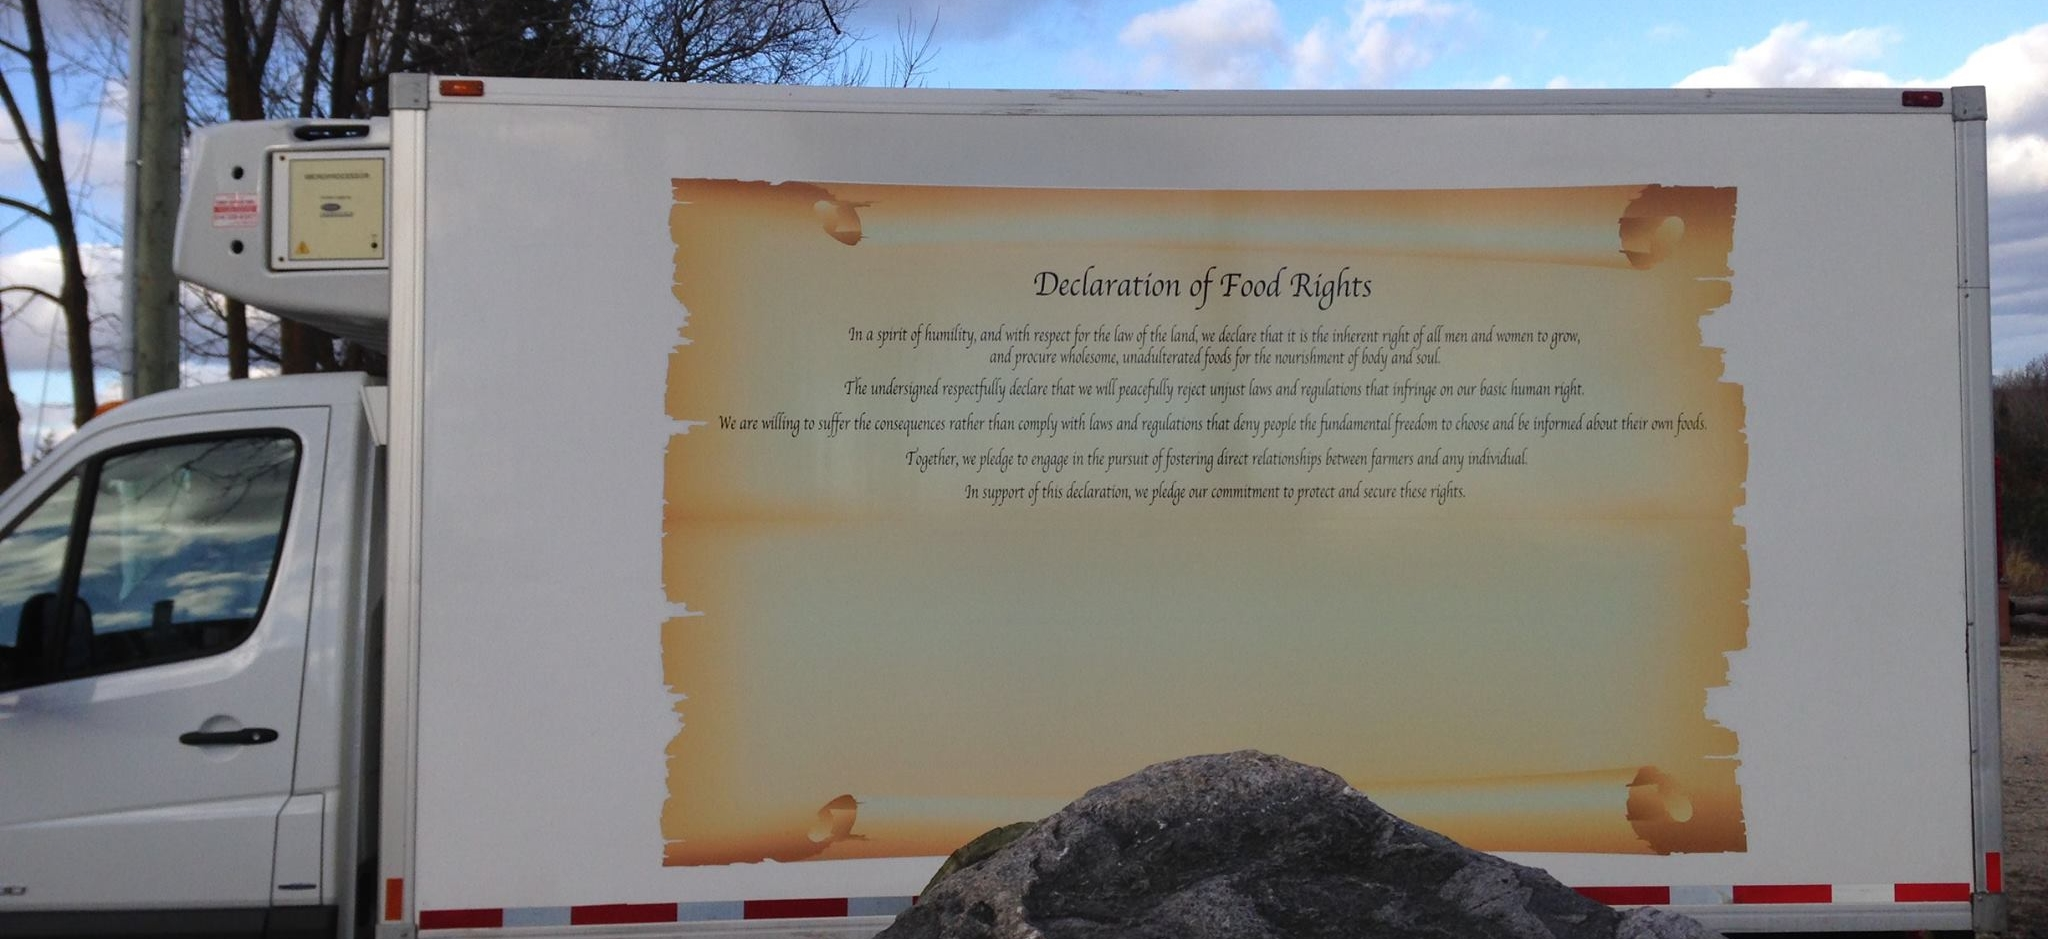 Declaration of Food rights printed on the side of a refrigerated truck, ready to be signed later today at the Ontario Legislature Parliament Building, Toronto by Glencolton farm share holders.